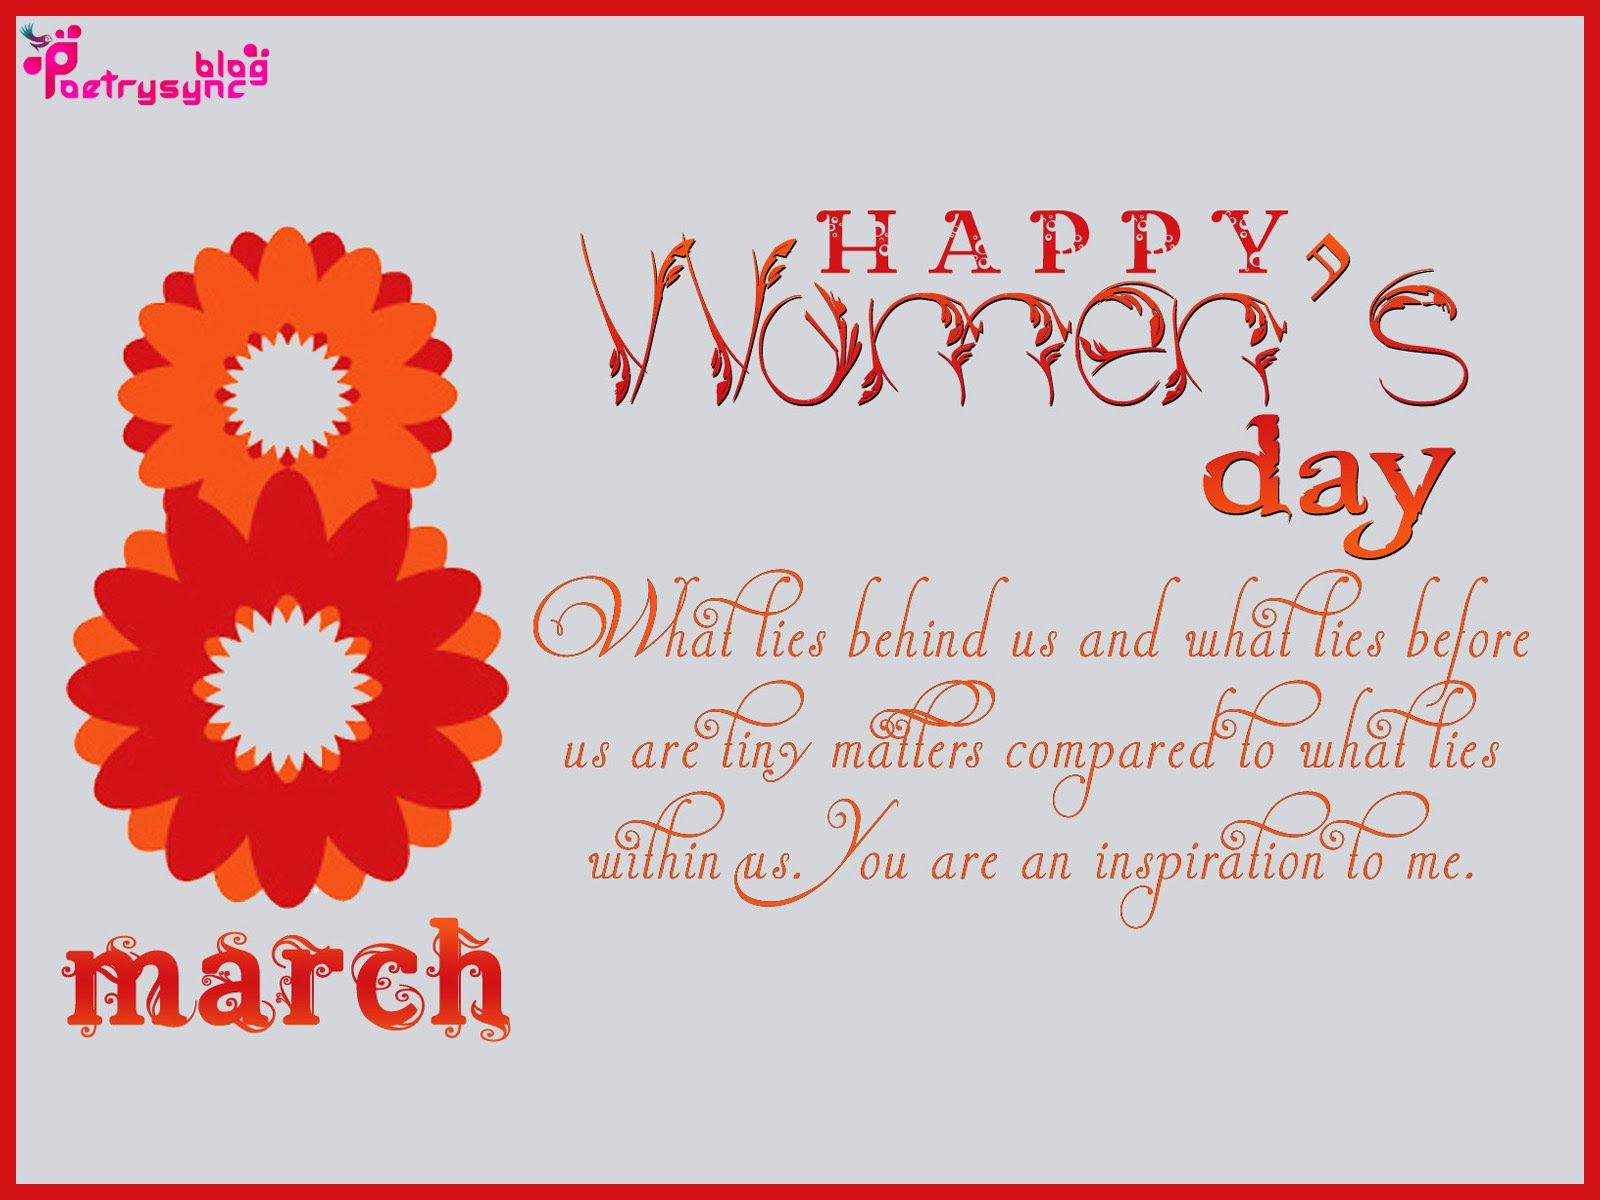 Happy international womens day wishes and greetings message sms happy international womens day wishes and greetings message sms card photo kristyandbryce Gallery